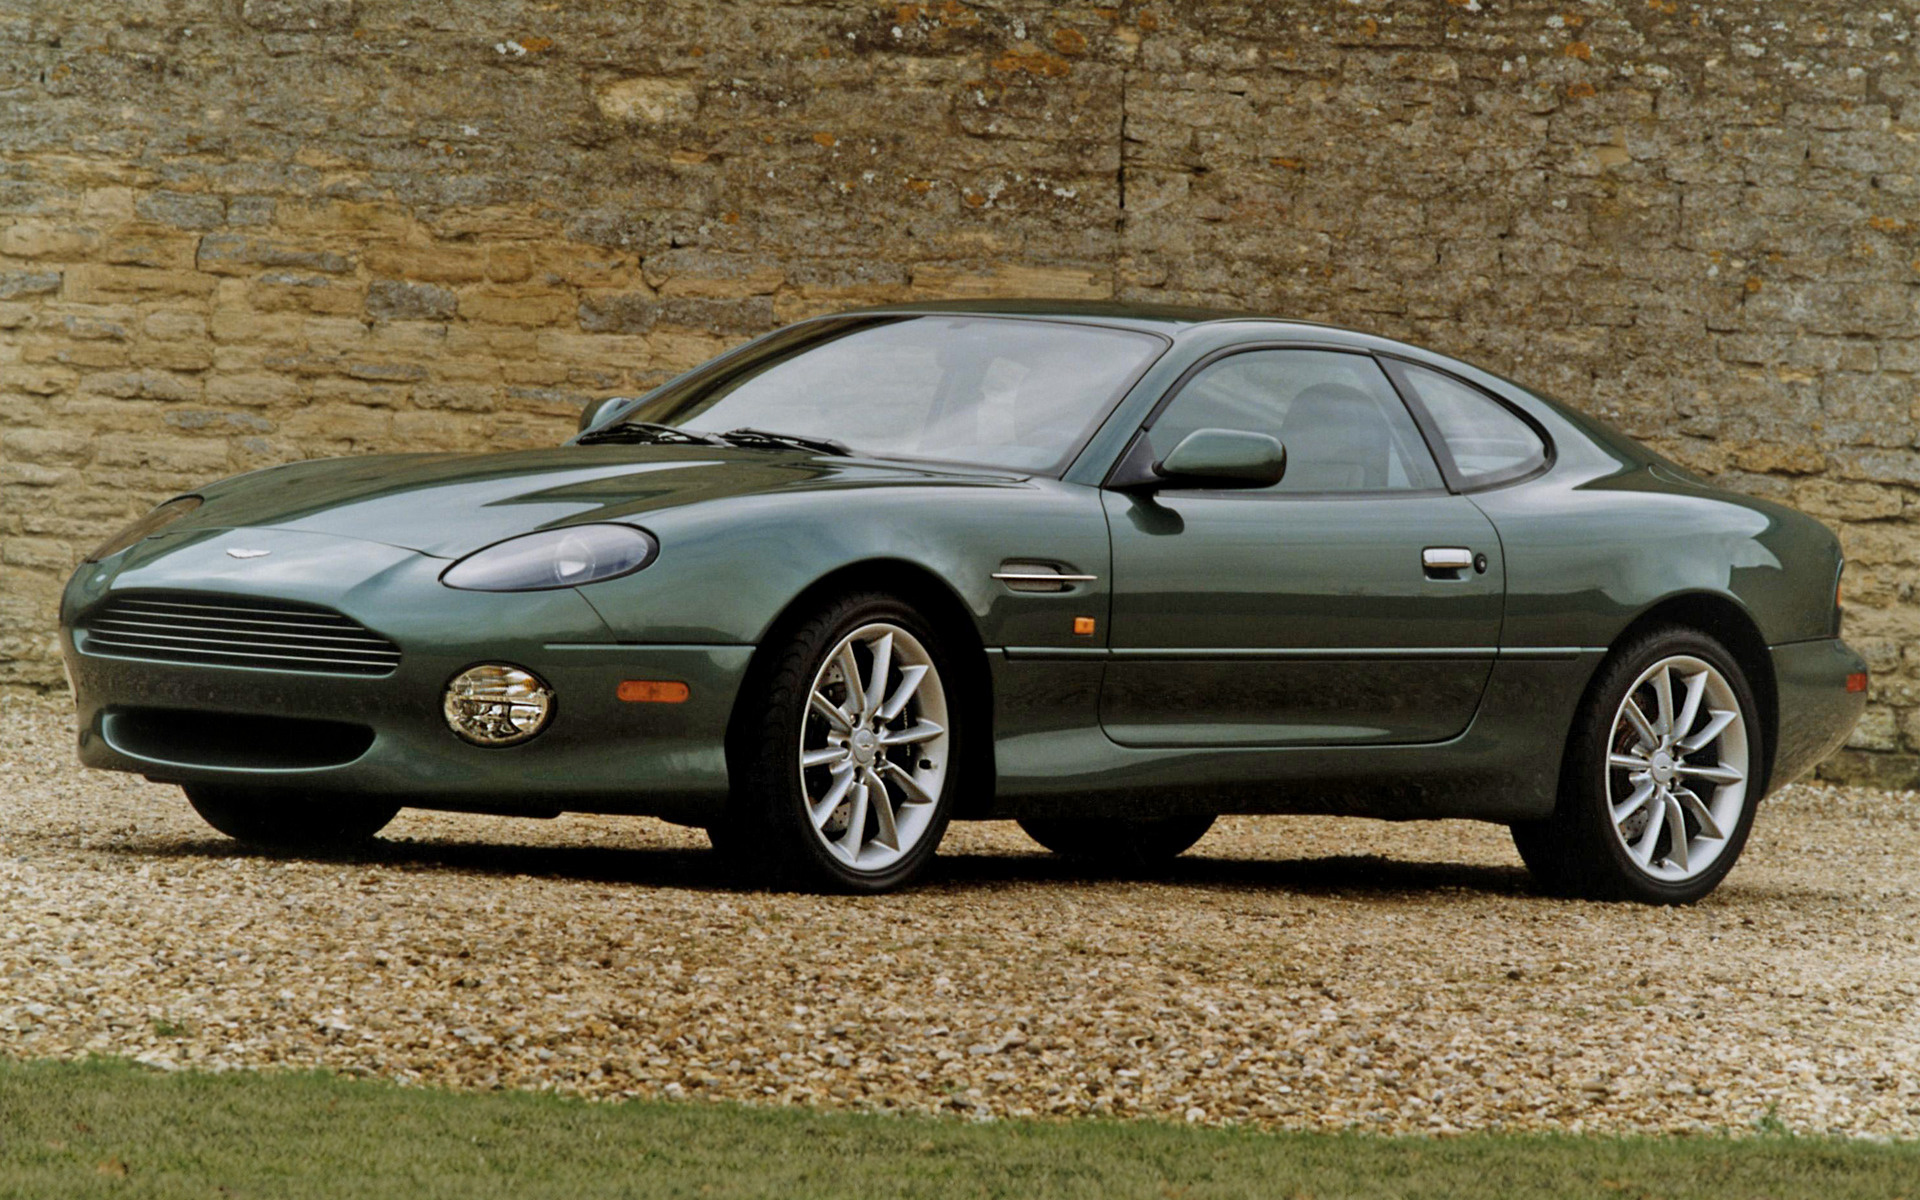 Aston Martin DB7 Vantage (1999) US Wallpapers And HD